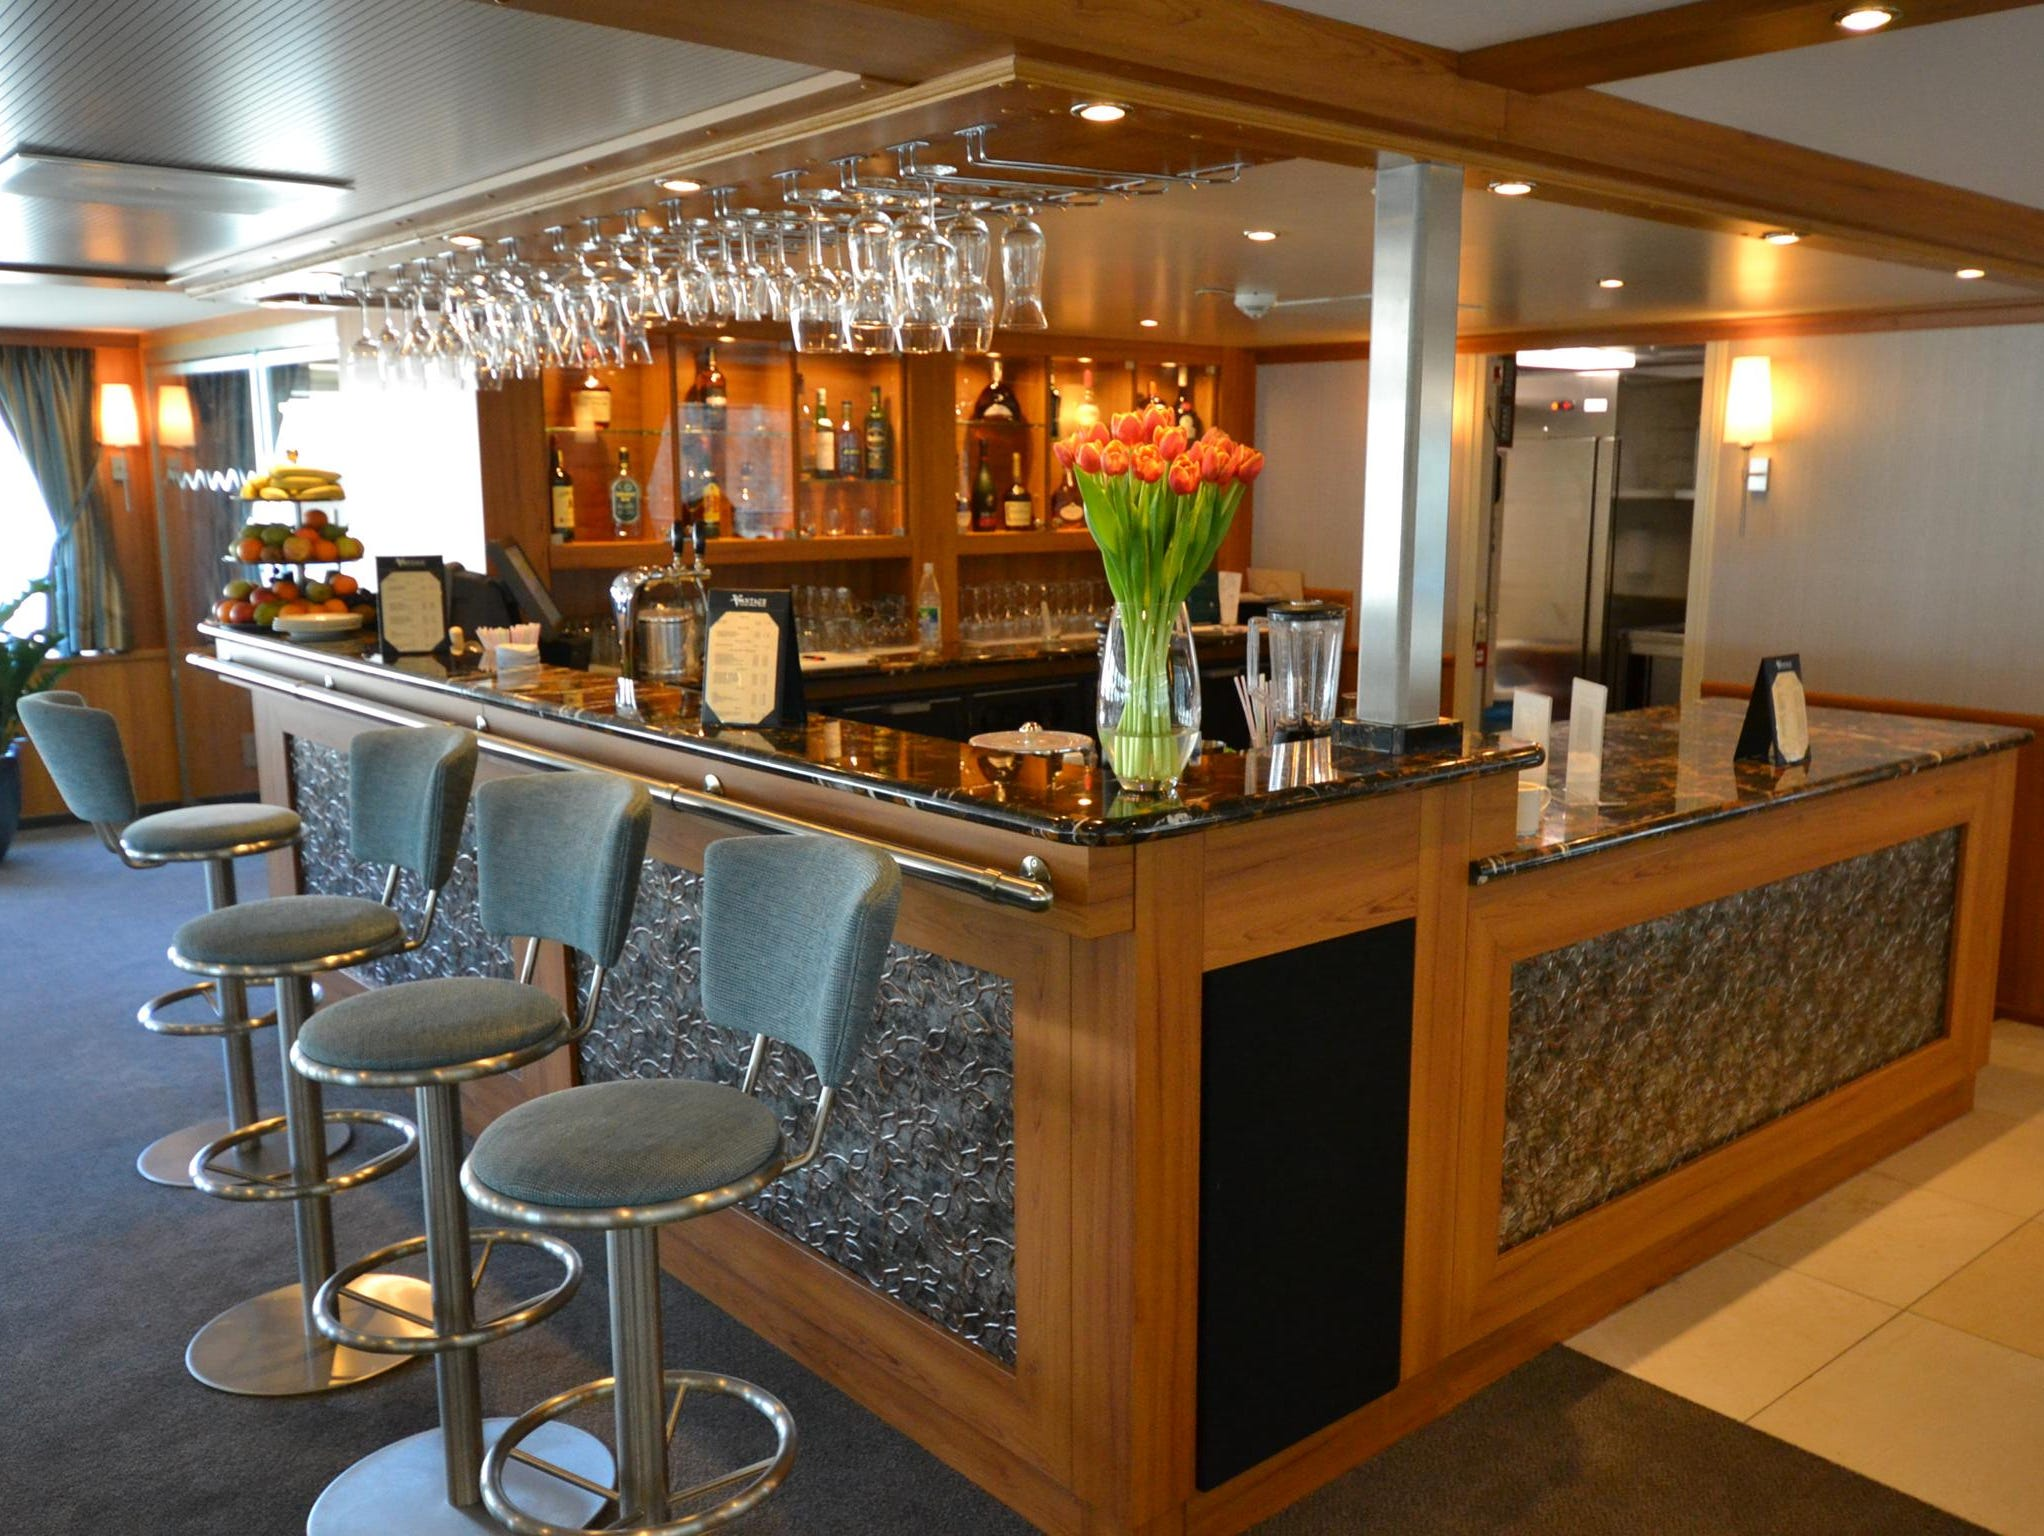 Called the Latitude 52 Lounge, the main lounge of the River Discovery II is home to its bar, which is open in the evenings. The lounge features nightly entertainment from an on-board keyboardist as well as local performers who visit during select port calls.